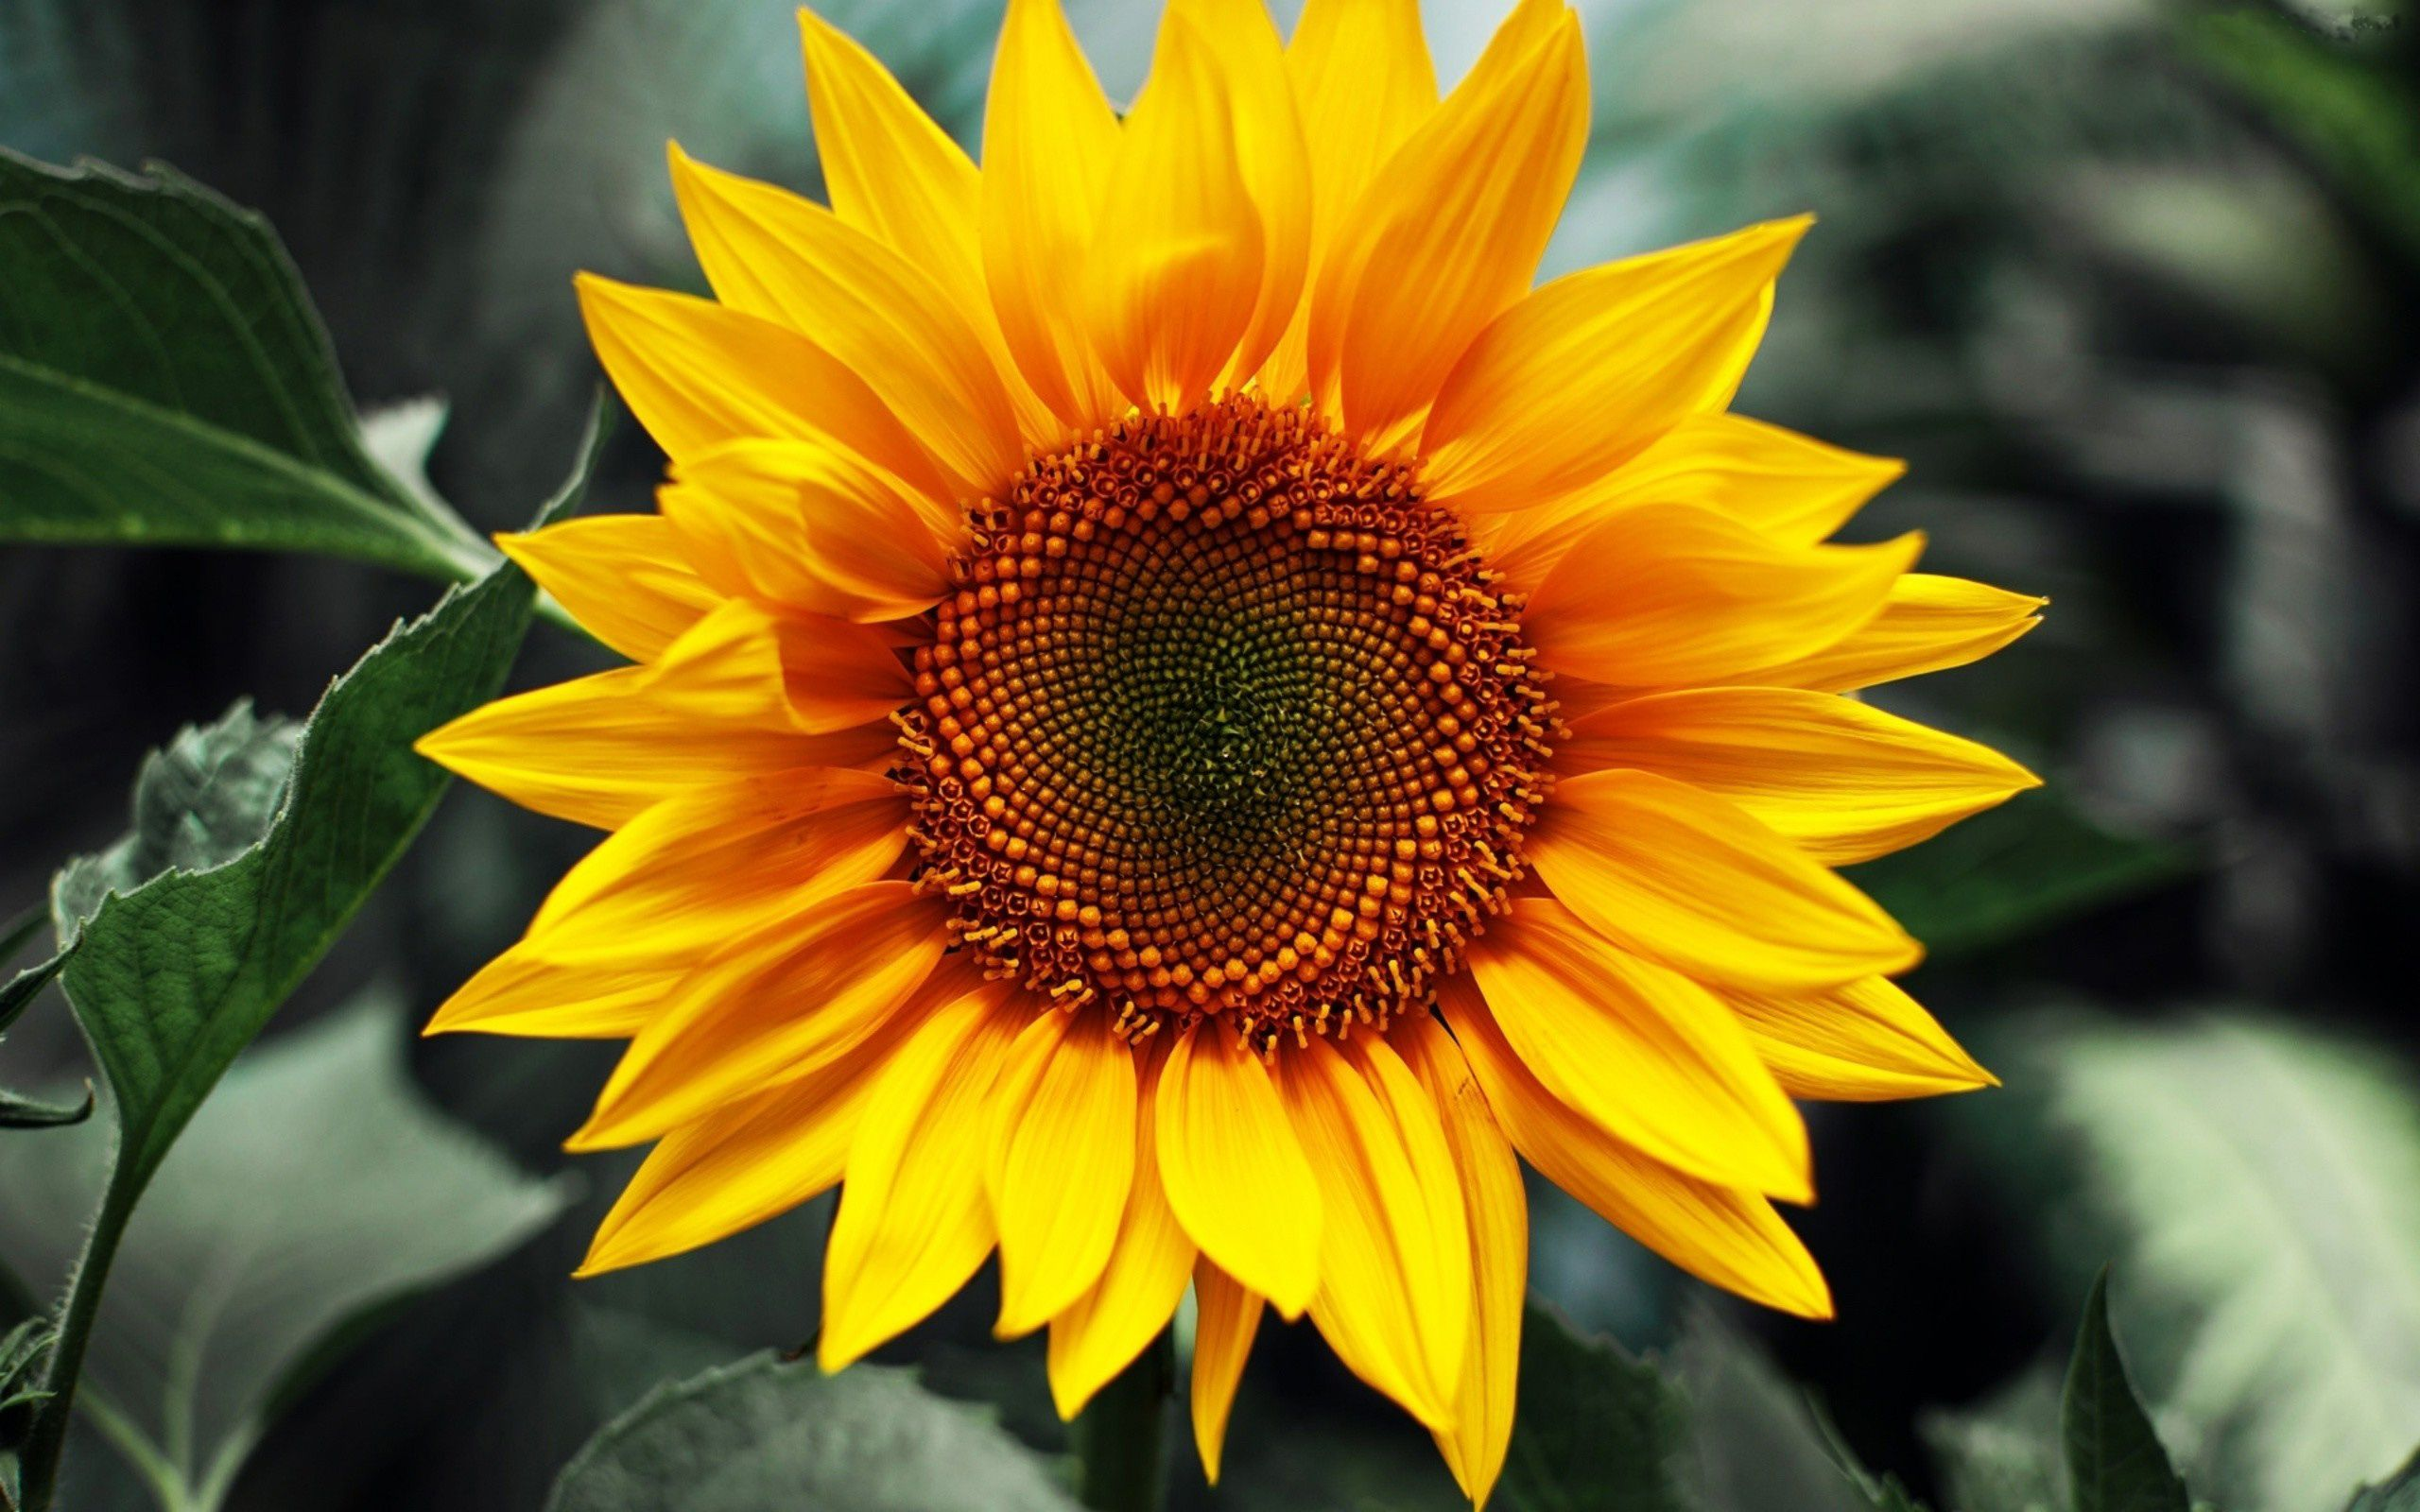 2560x1600 Laptop Backgrounds with Close Up Sunflower